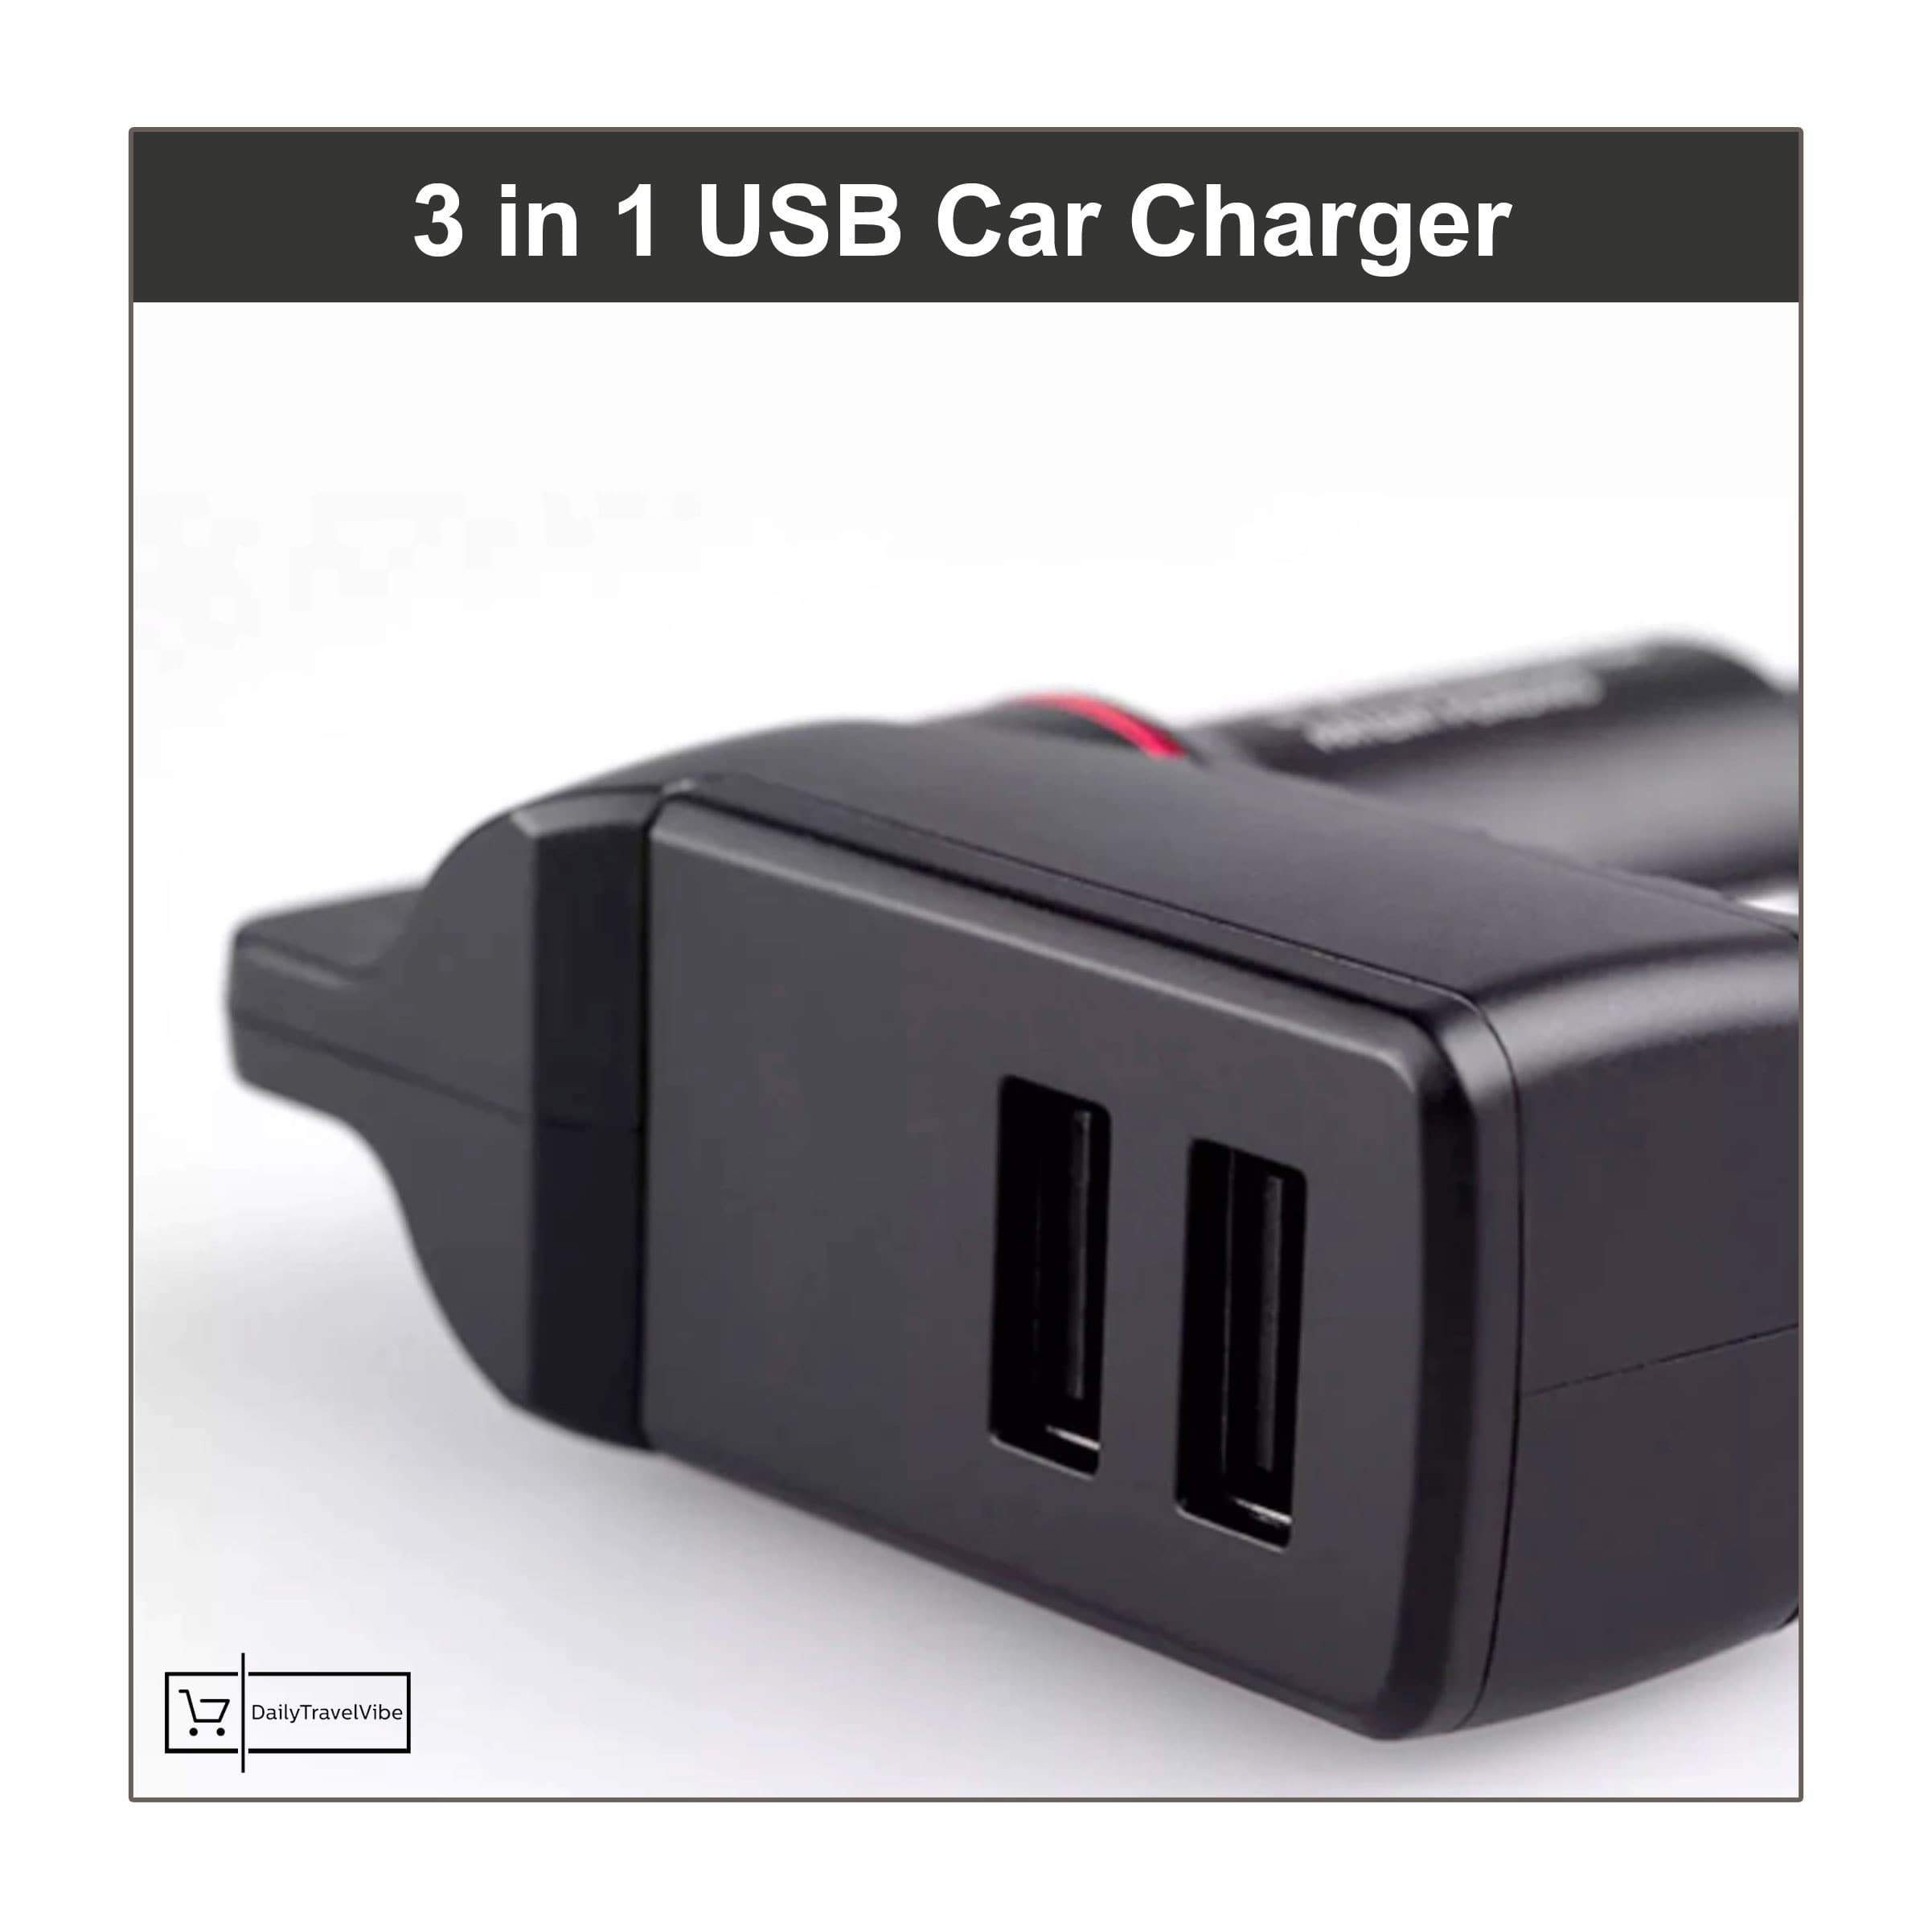 3 in 1 USB Car Charger